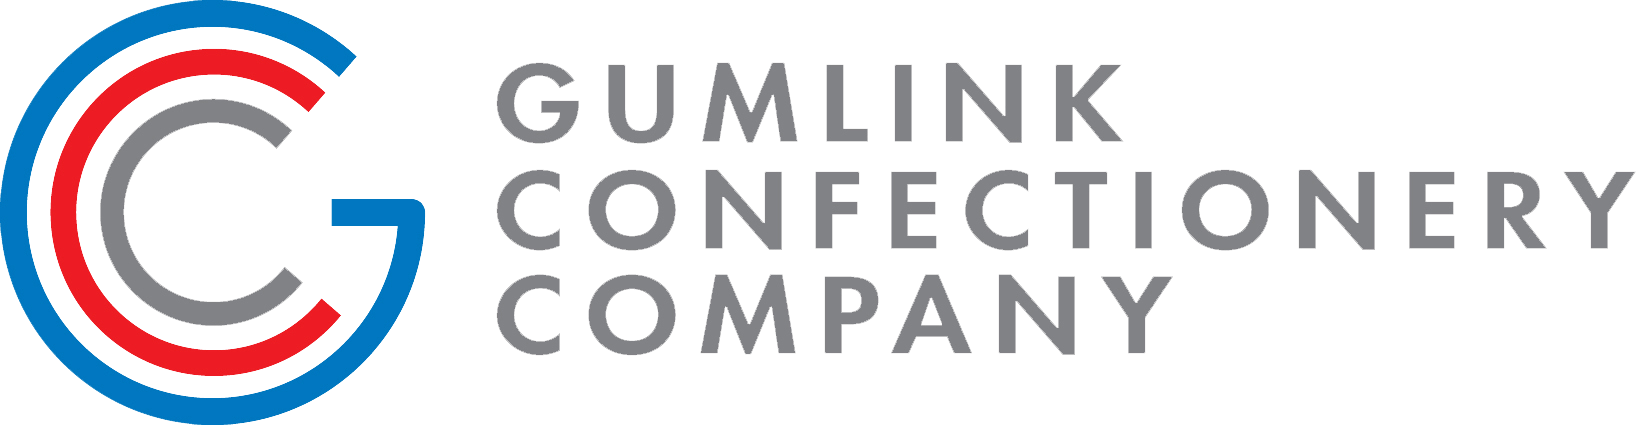 gumlink confectionery company